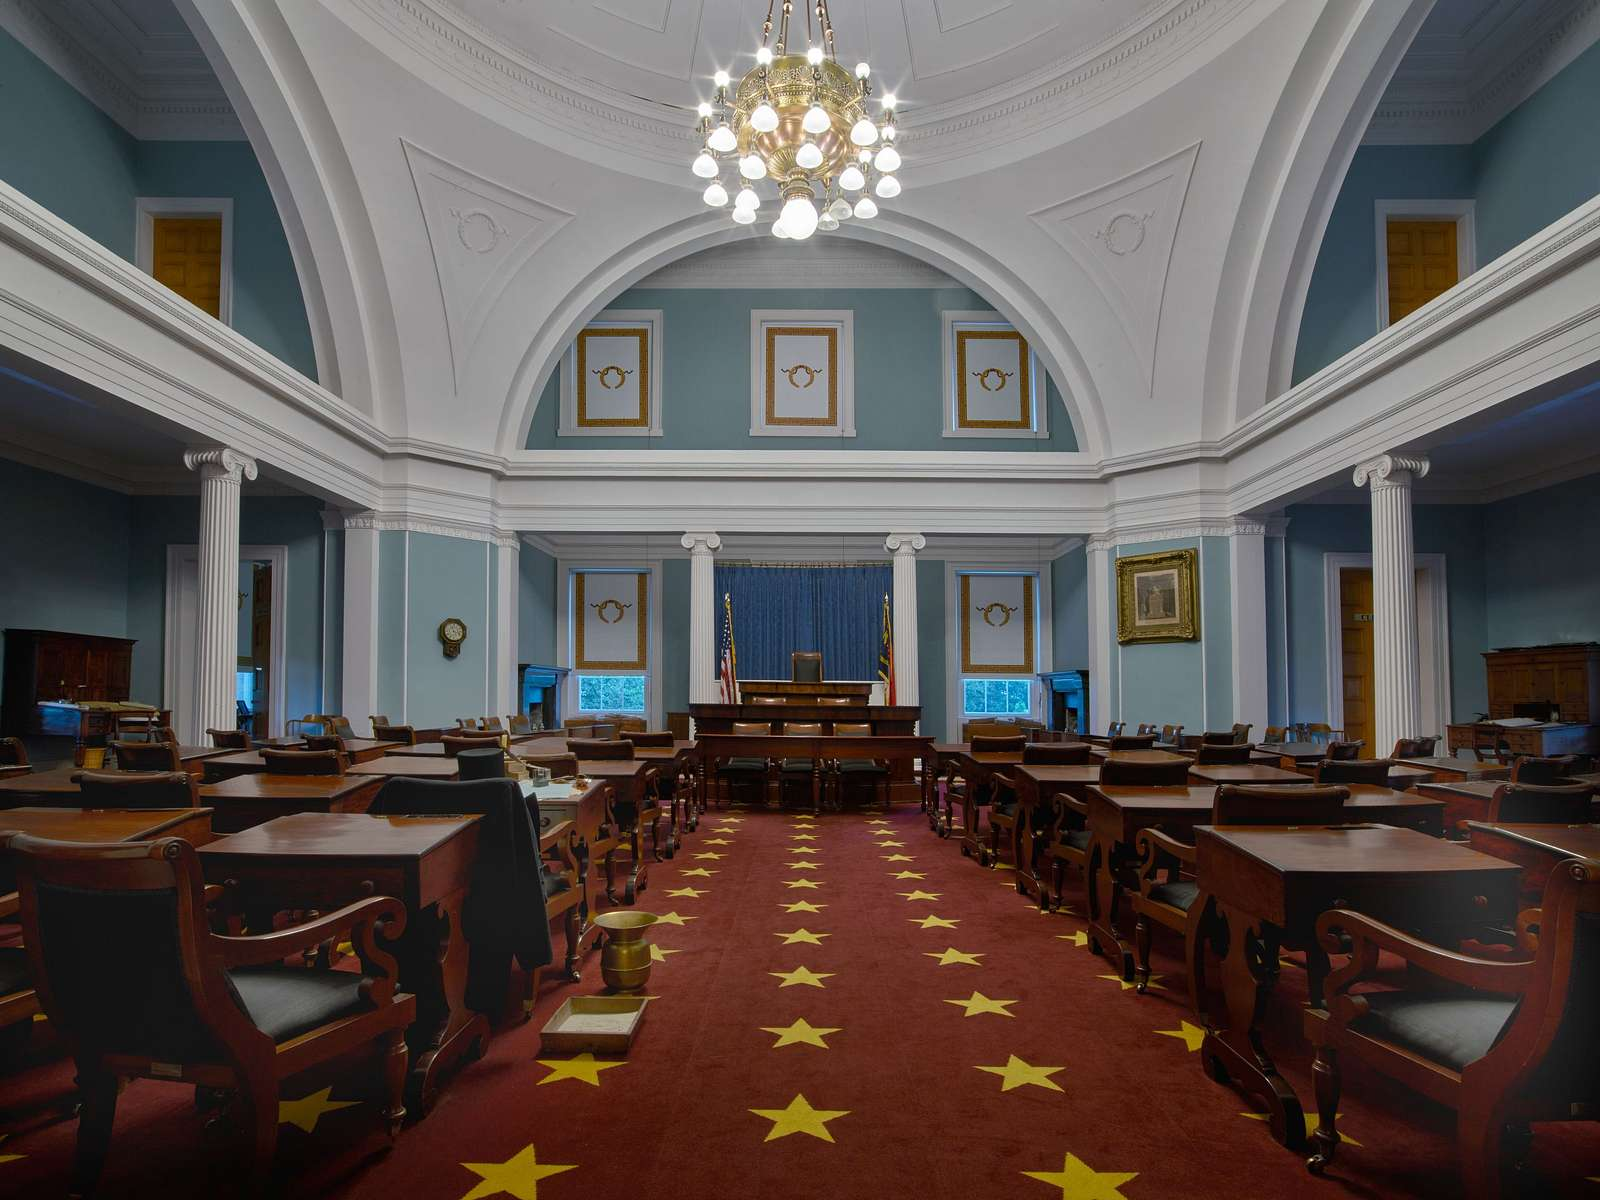 The onetime Senate Chambers in the North Carolina Capitol in Raleigh